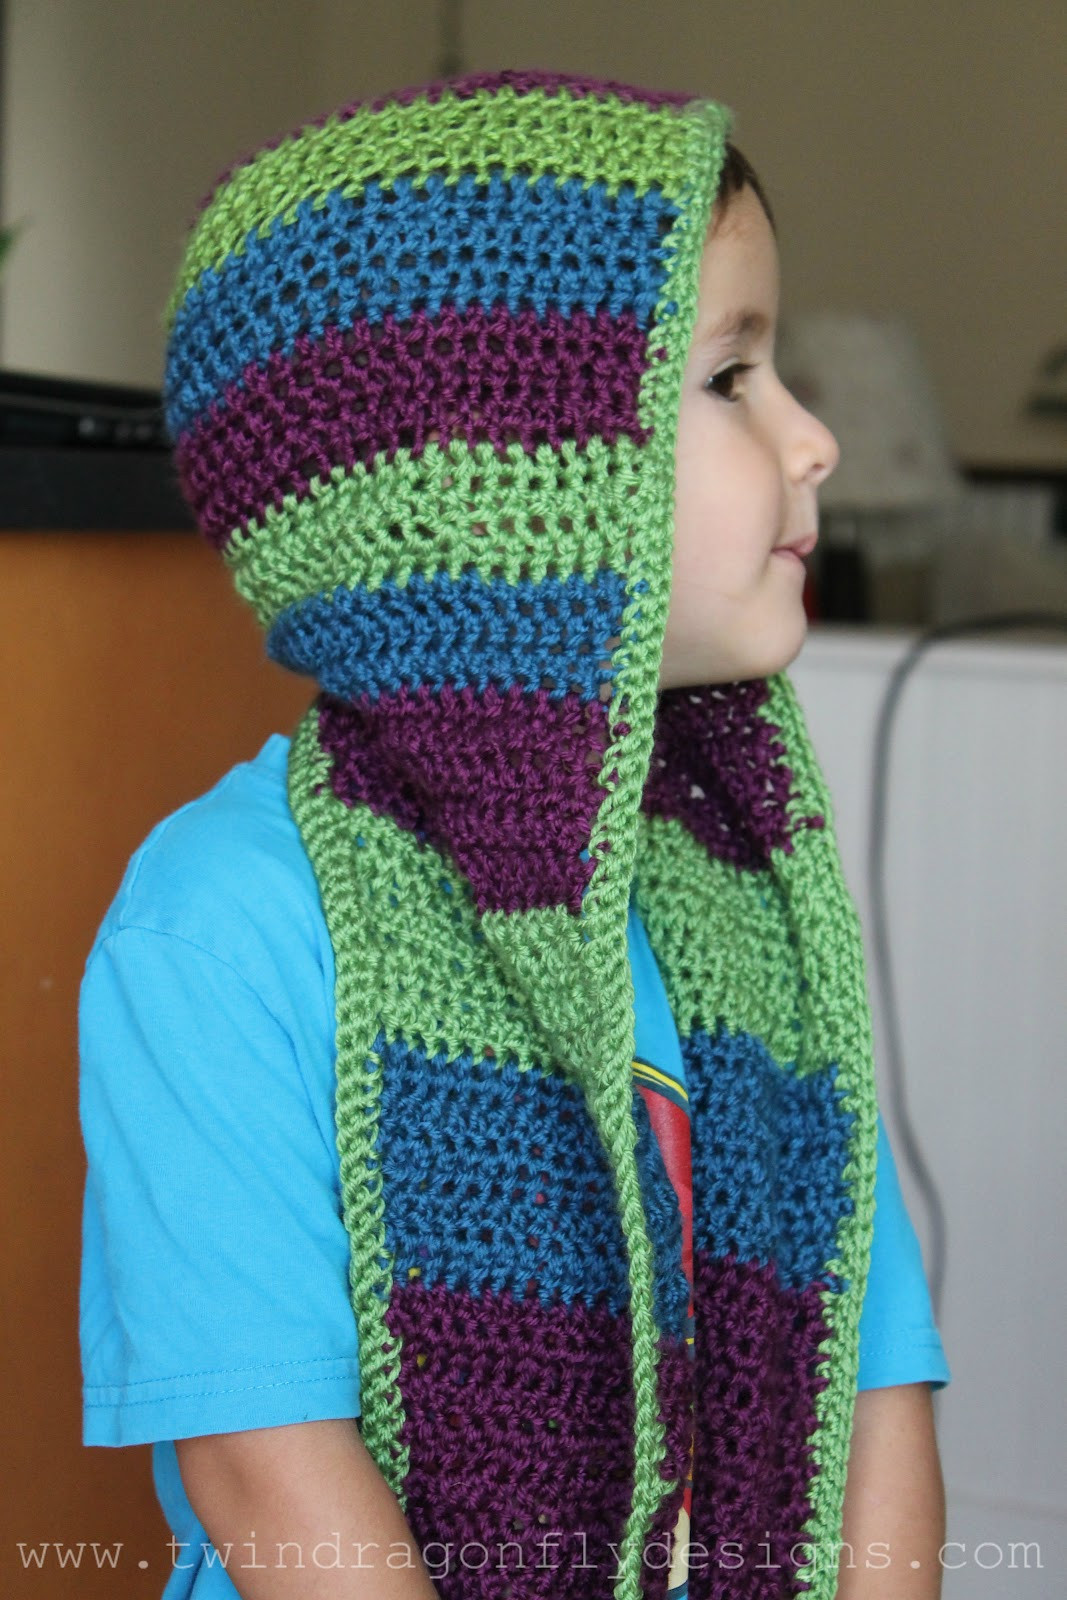 New Crochet Hooded Scarf Pattern Dragonfly Designs Crochet Hooded Scarf Of Wonderful 48 Images Crochet Hooded Scarf